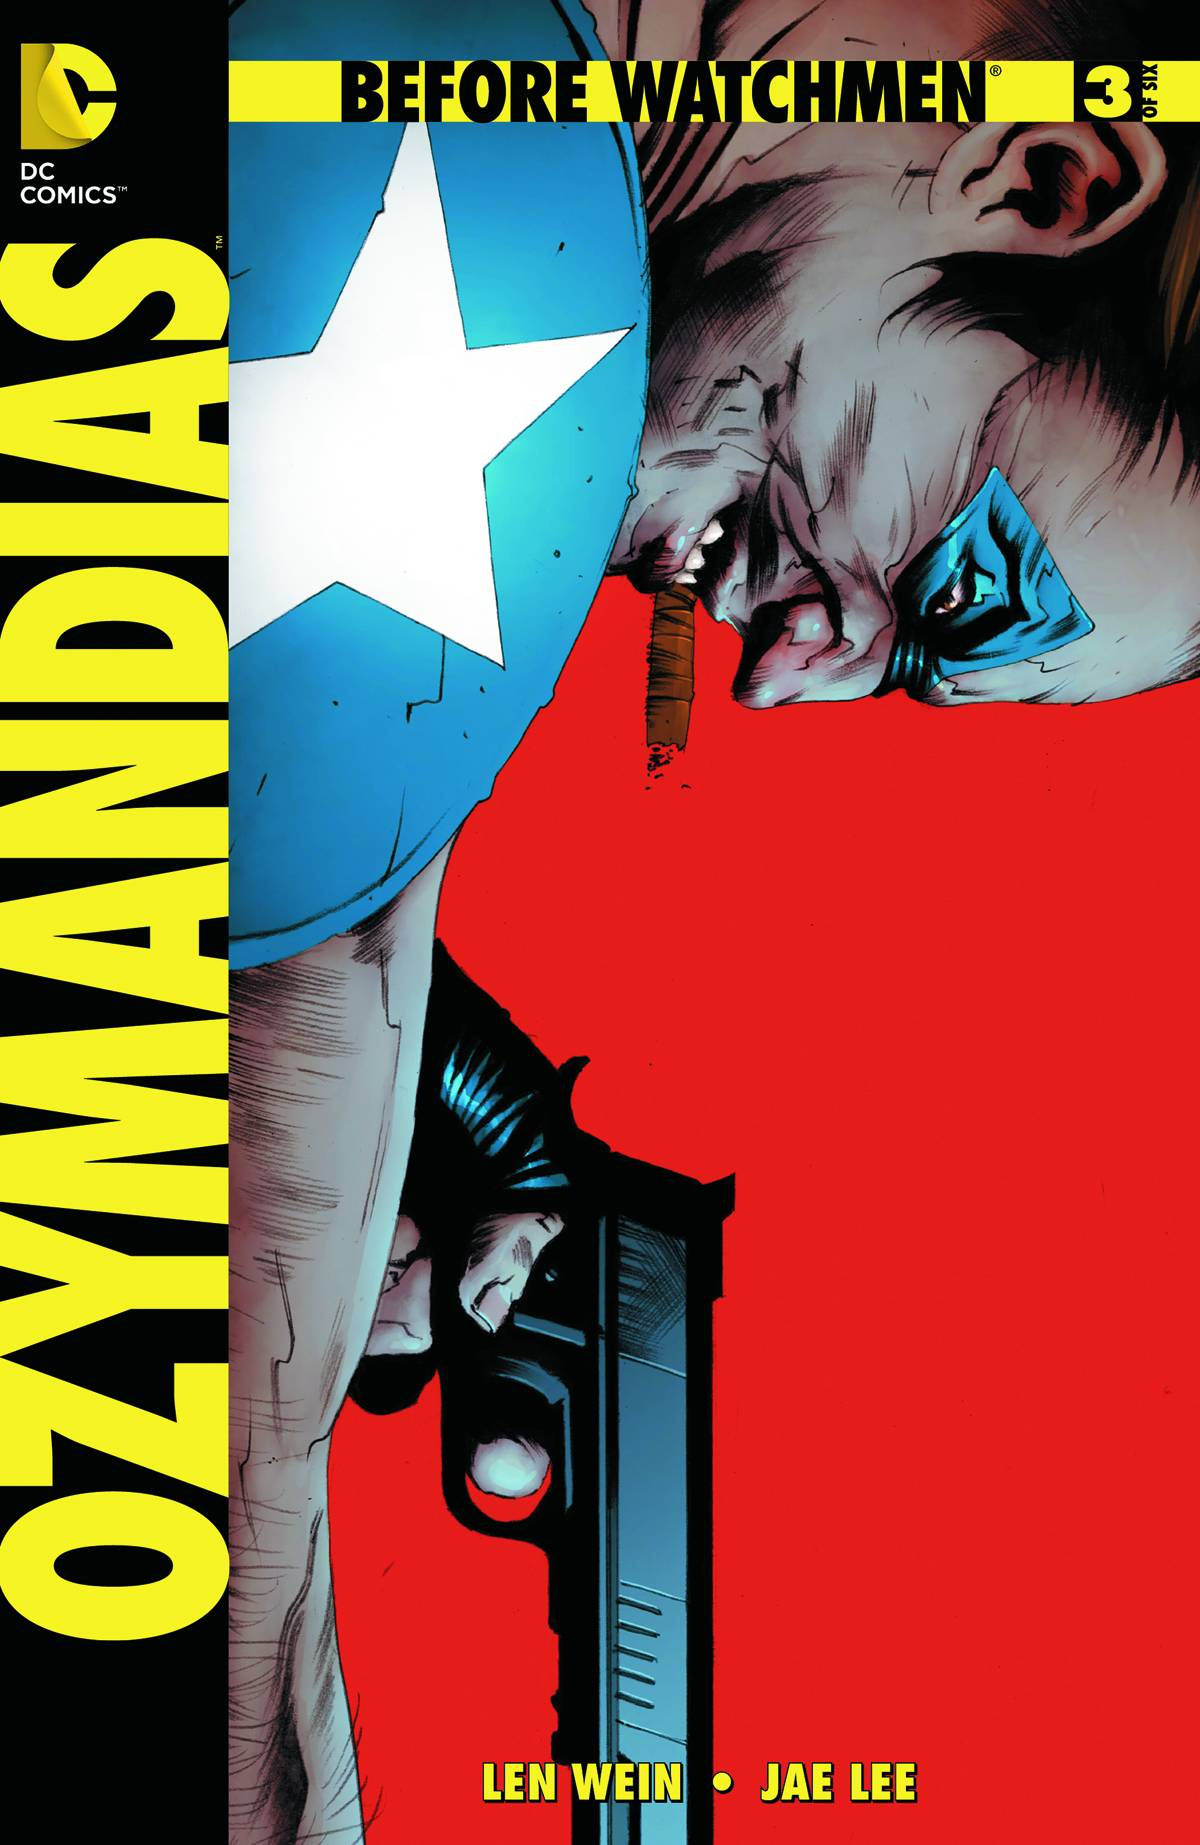 Watchmen: Before Watchmen - Ozymandias #3 (of 6)